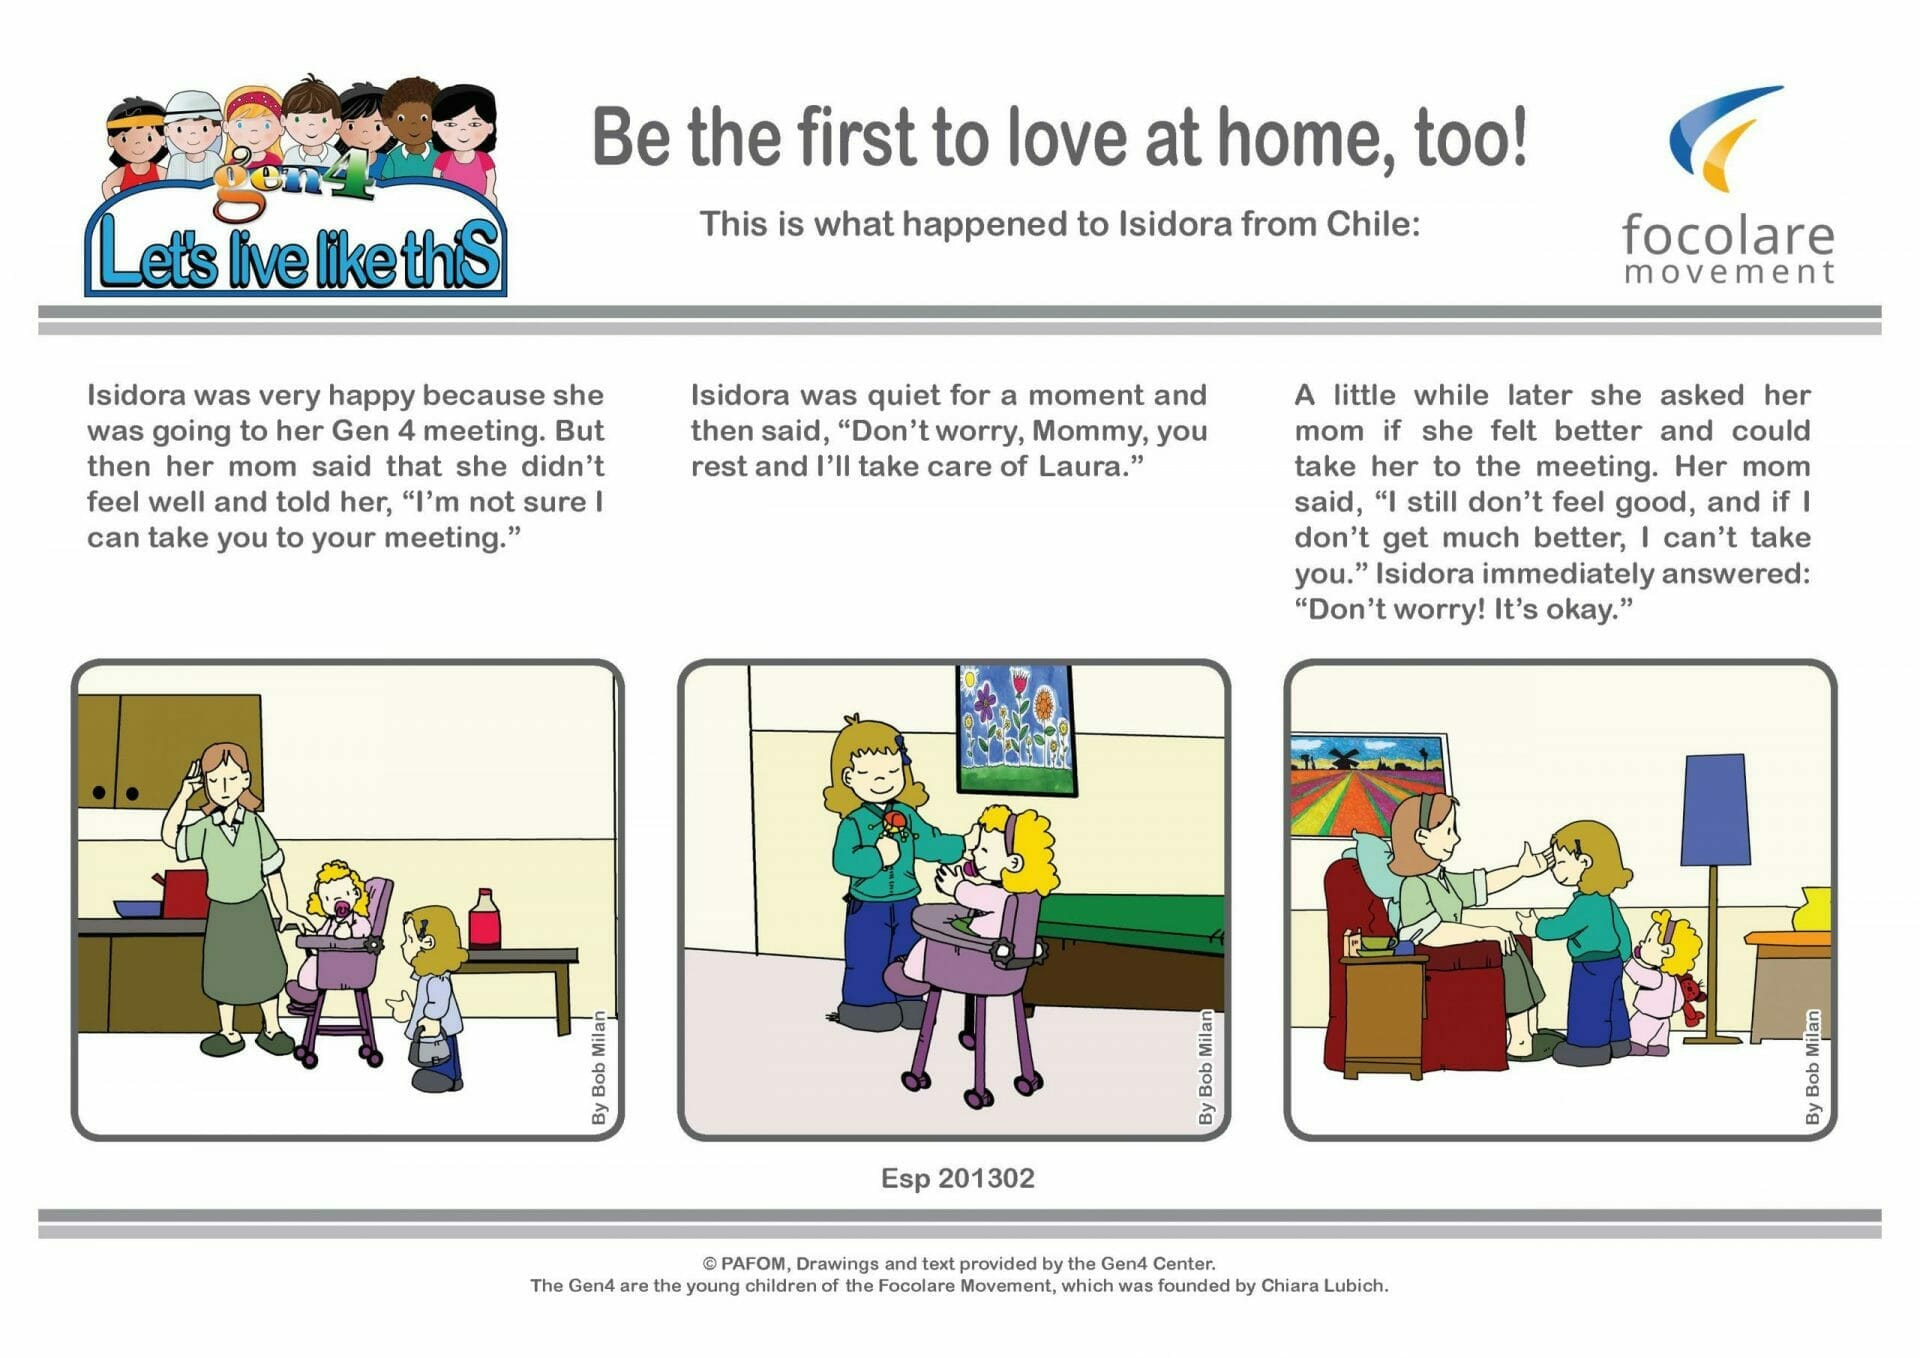 Be the first to love at home, too!